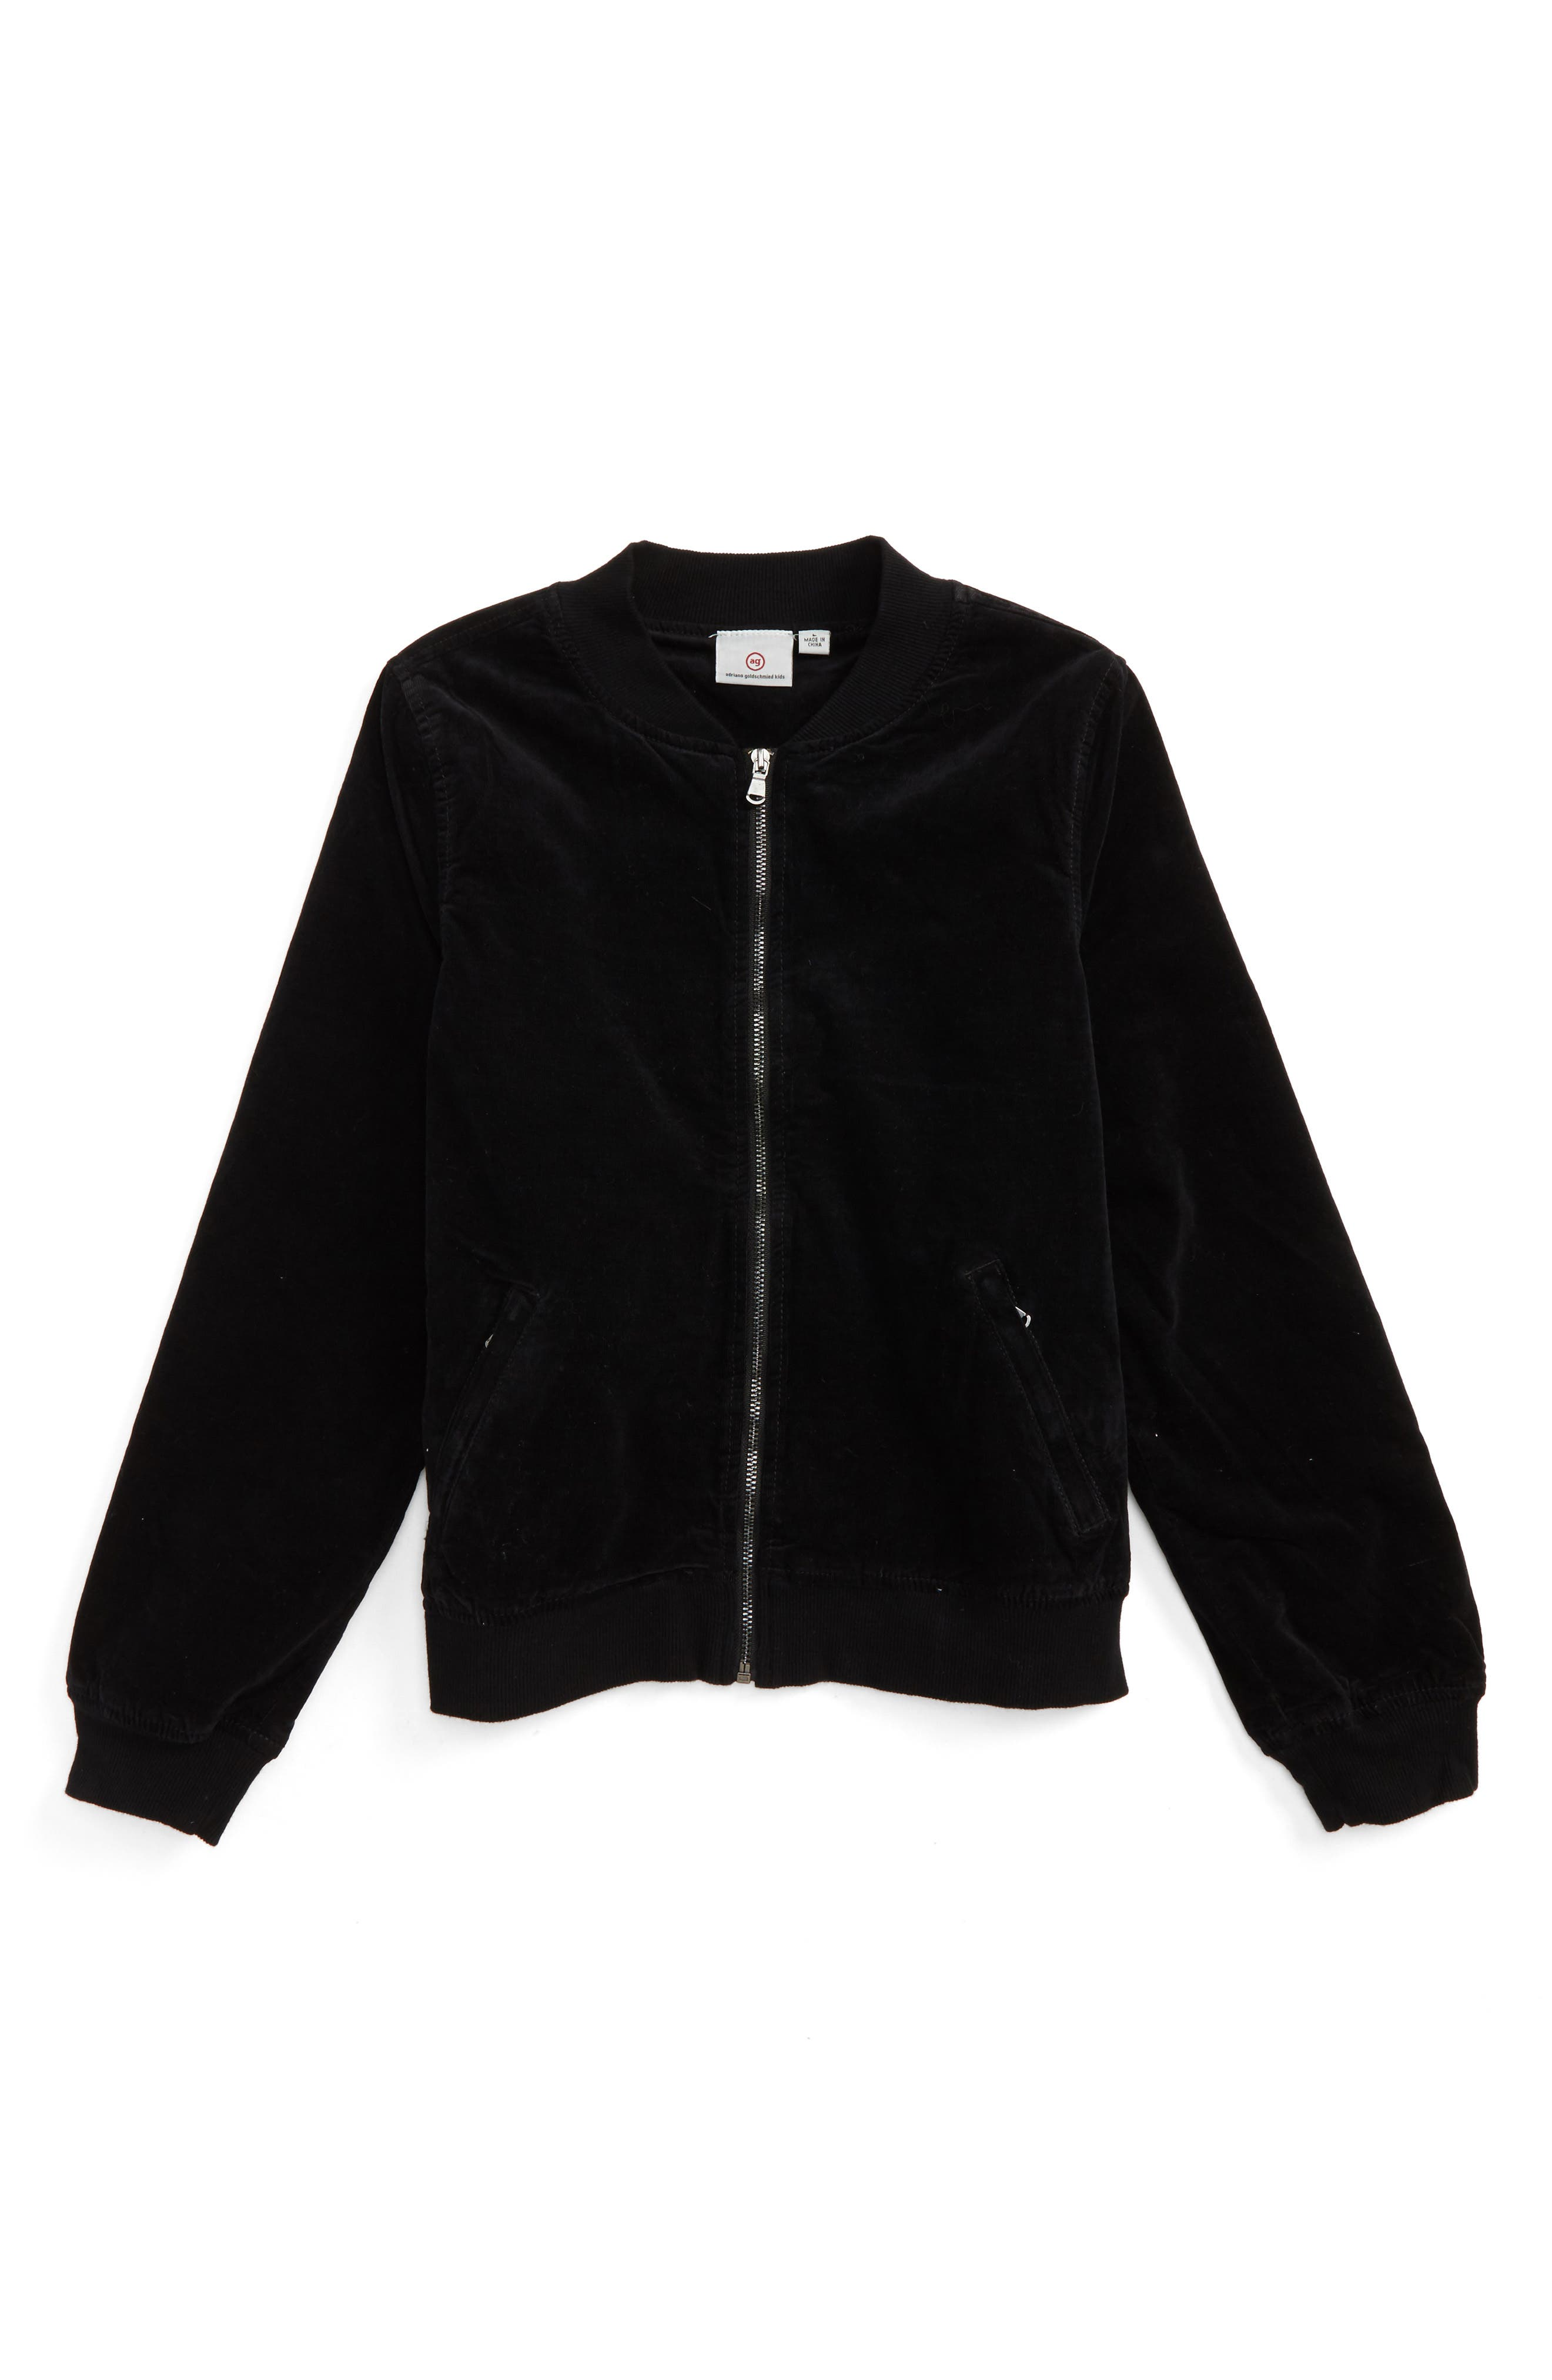 Corduroy Bomber Jacket,                             Main thumbnail 1, color,                             Black